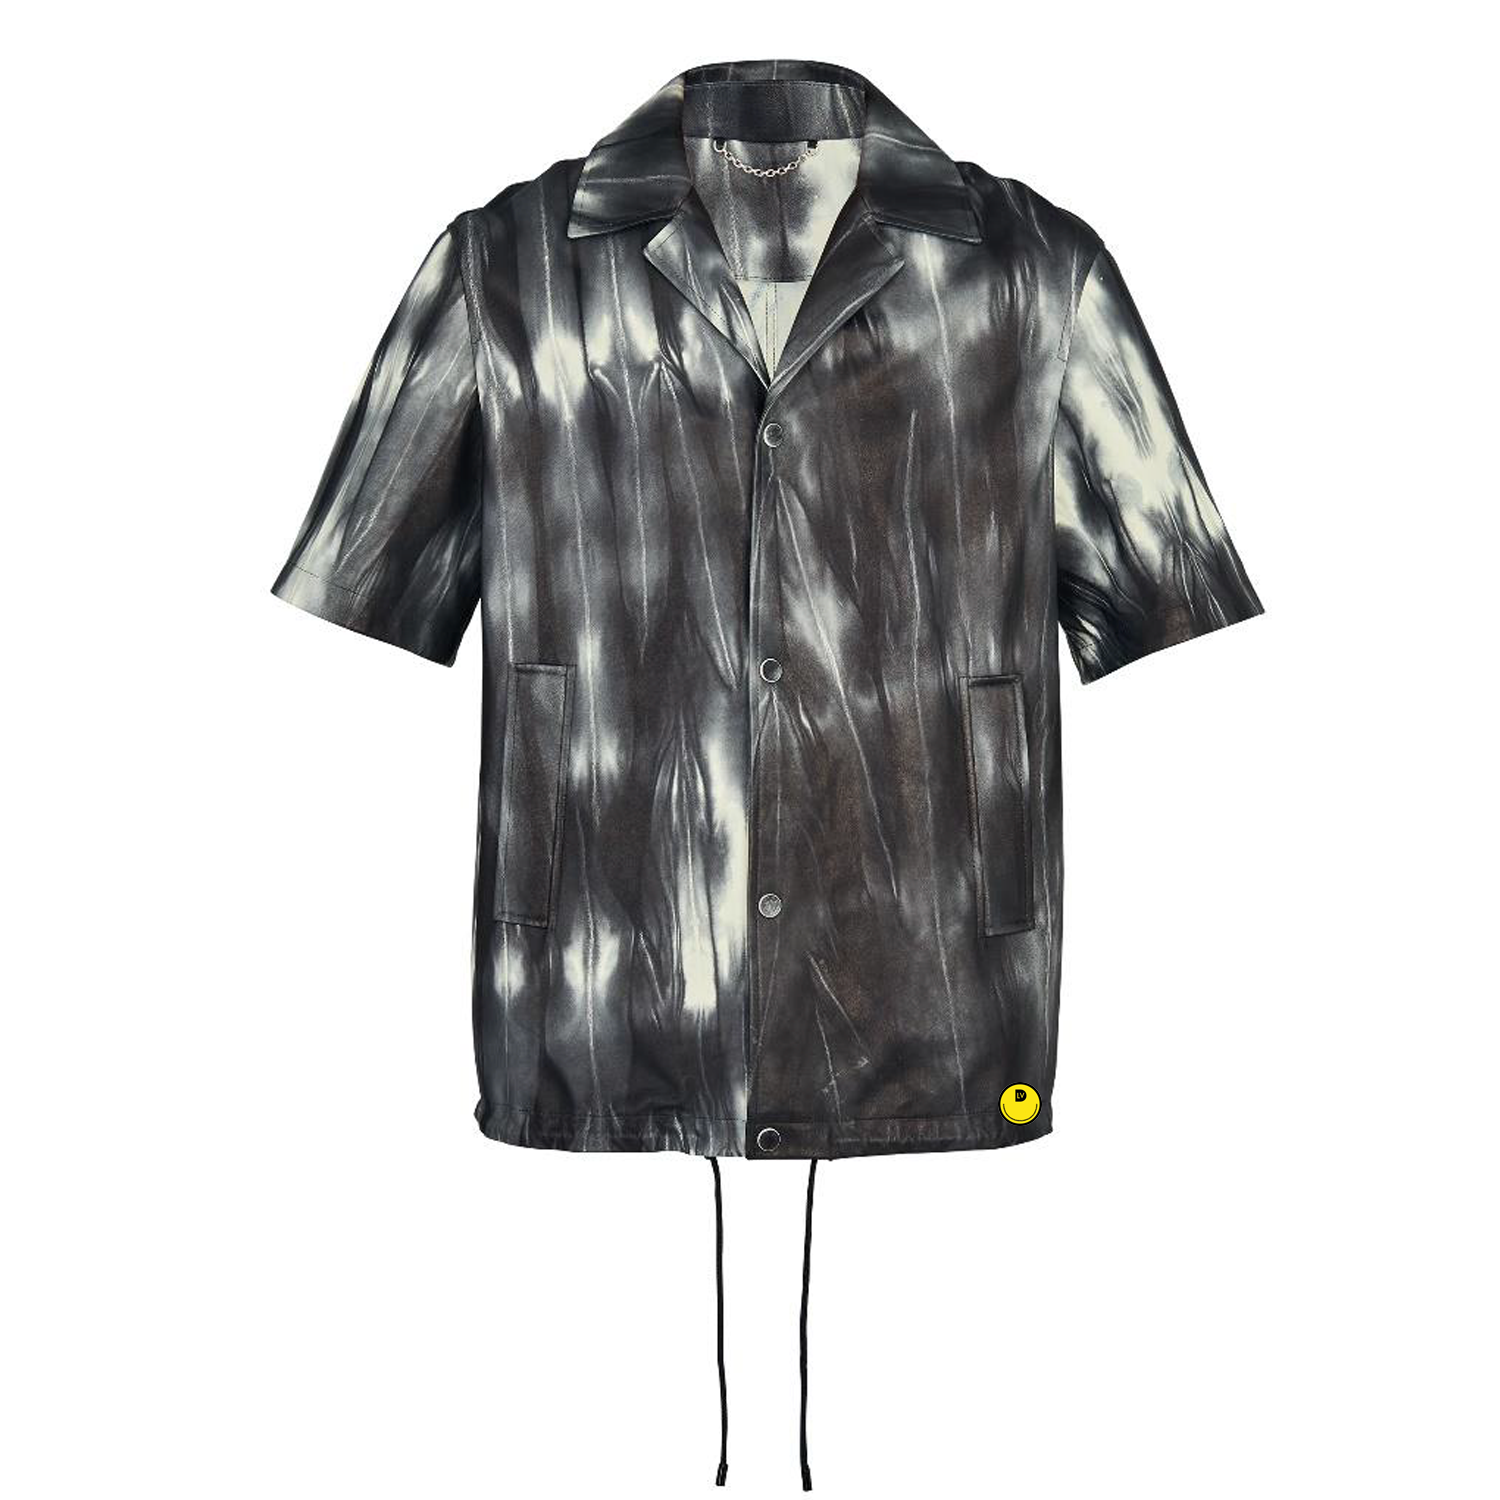 LEATHER TIE AND DYE SHIRT - €4500 $-NOIR